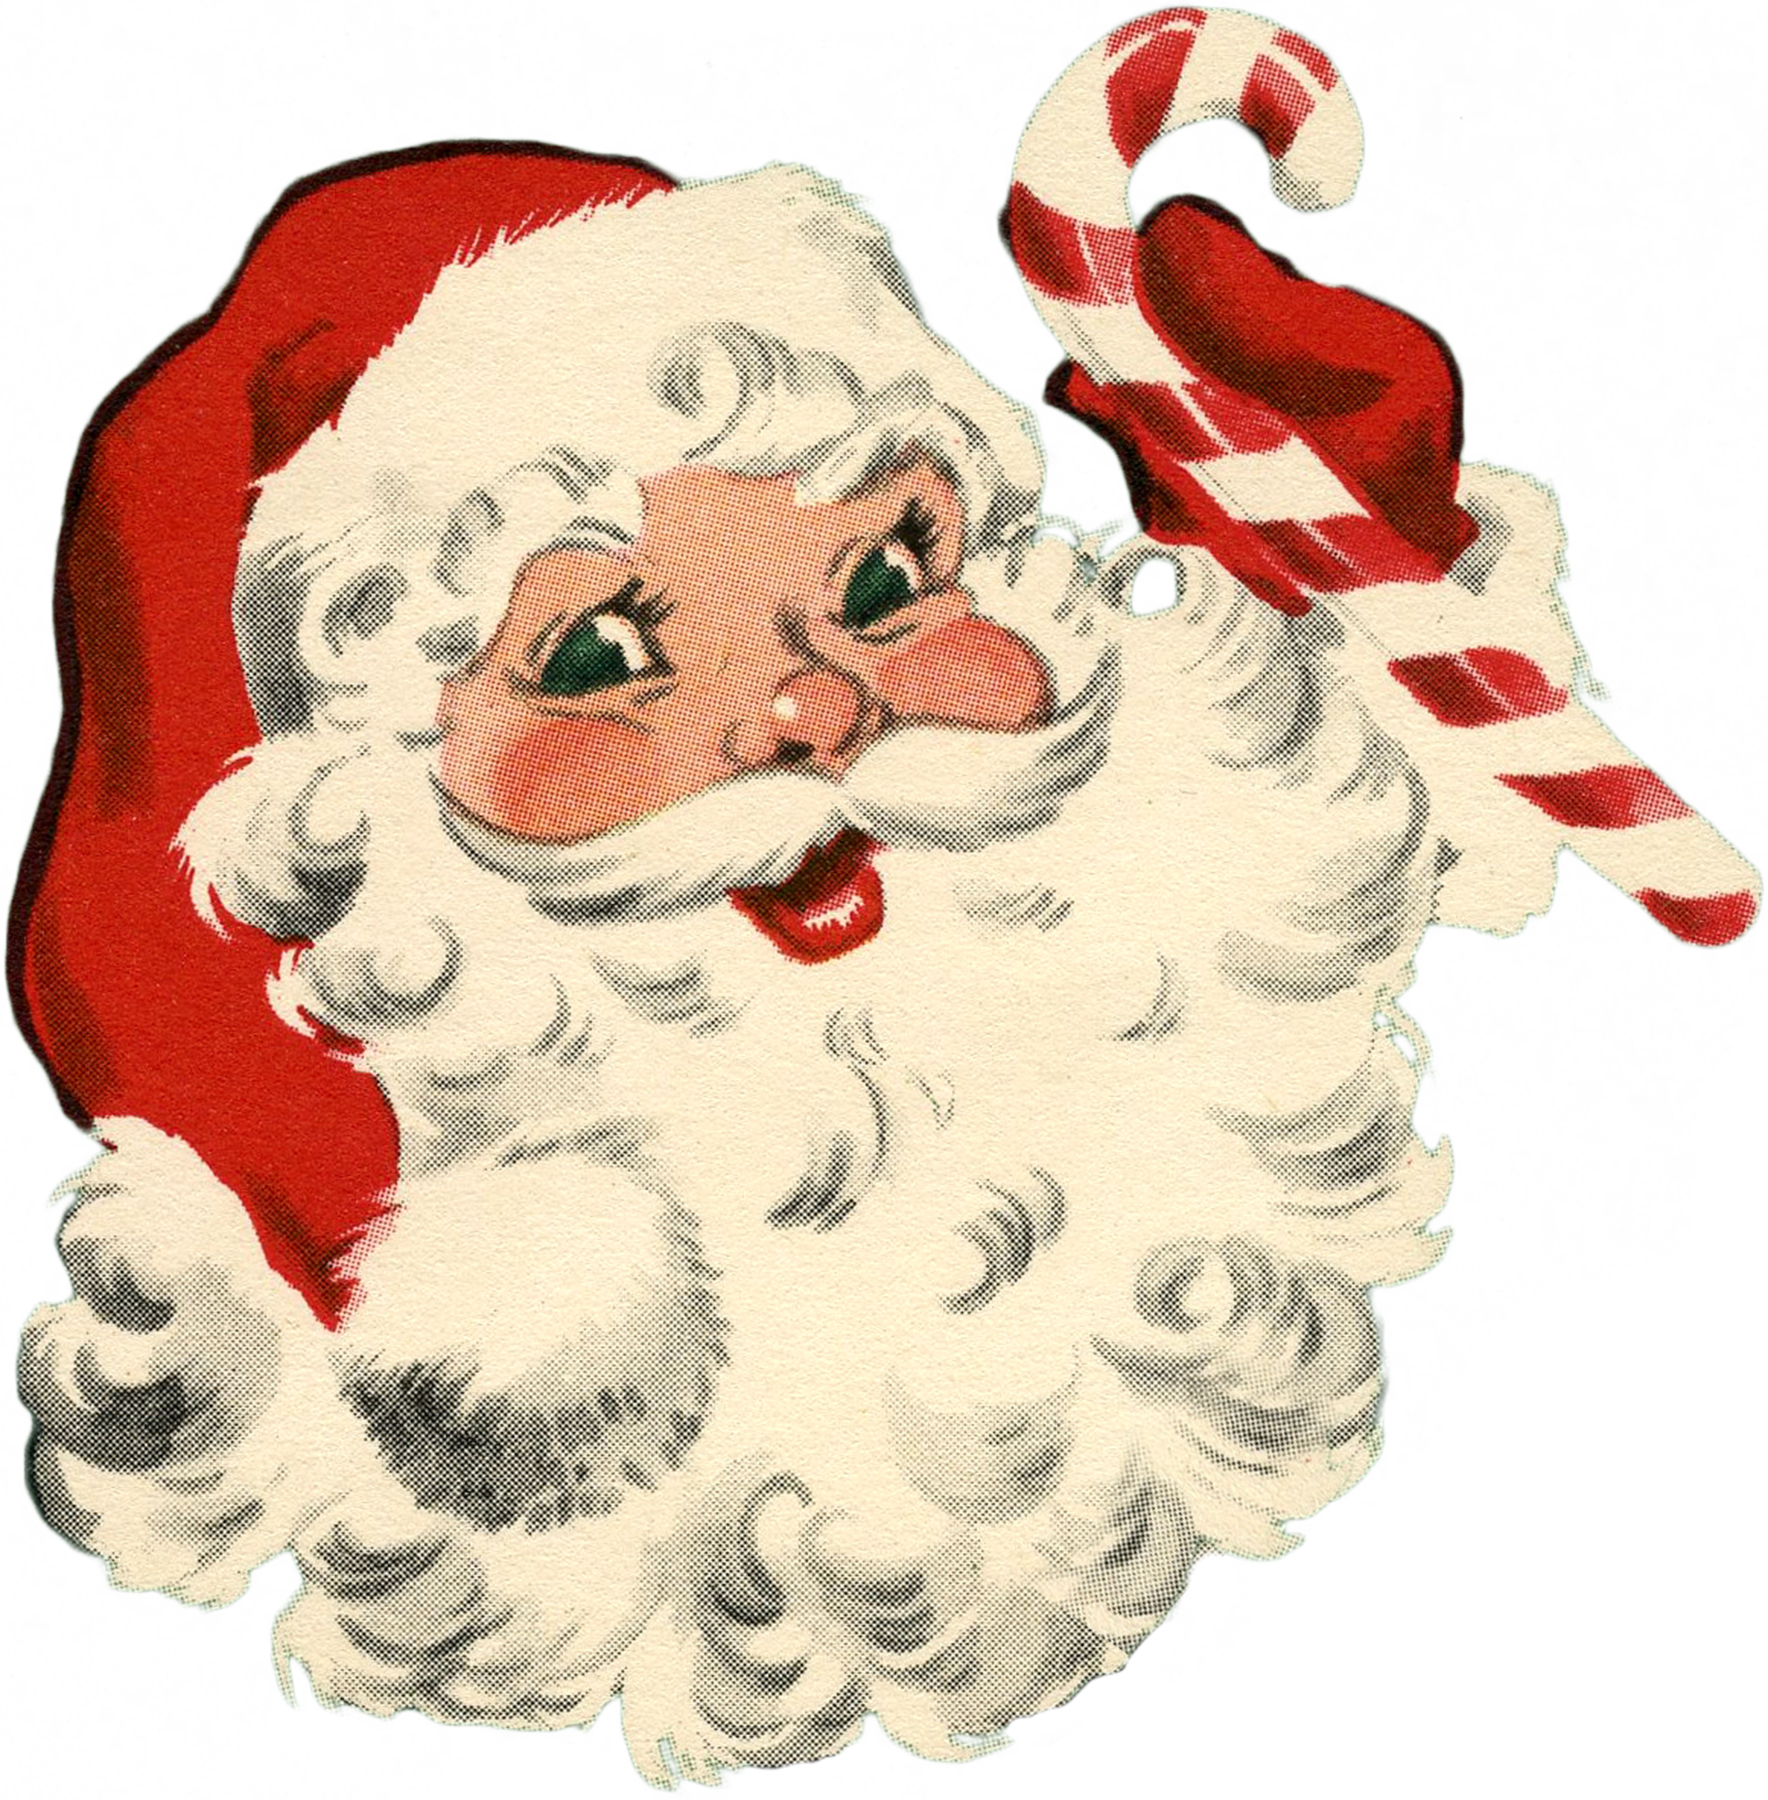 Vintage santa with candy cane image the graphics fairy for Autrefois decoration